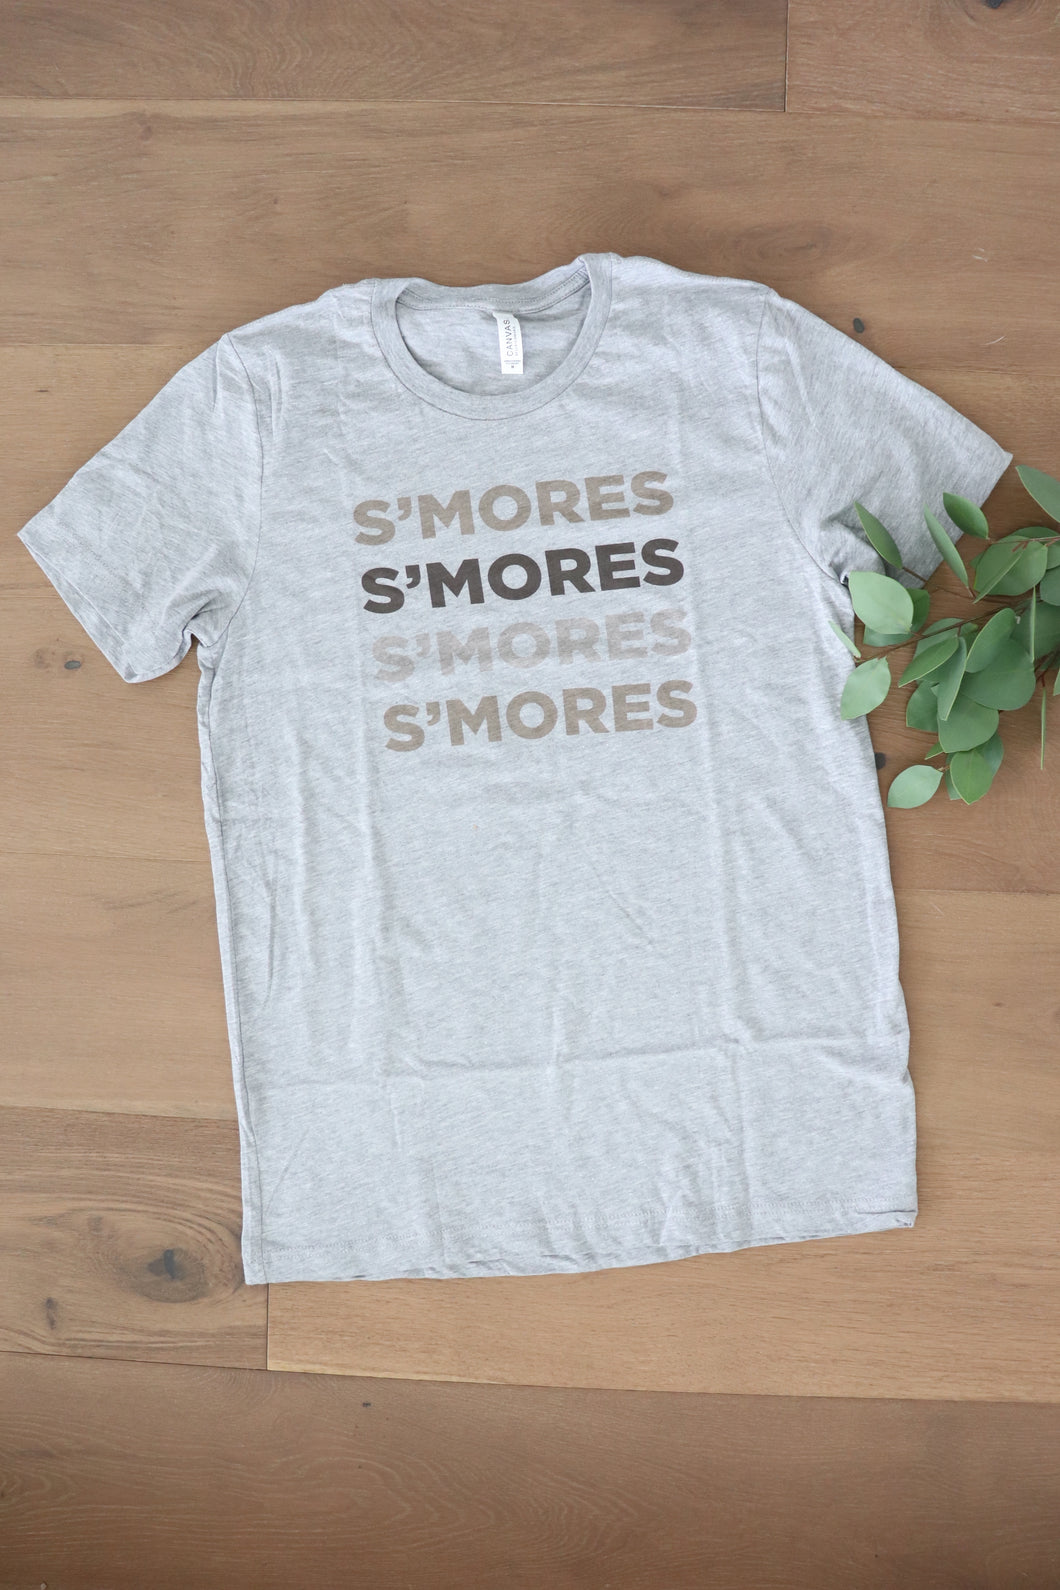 S'MORES T-shirt